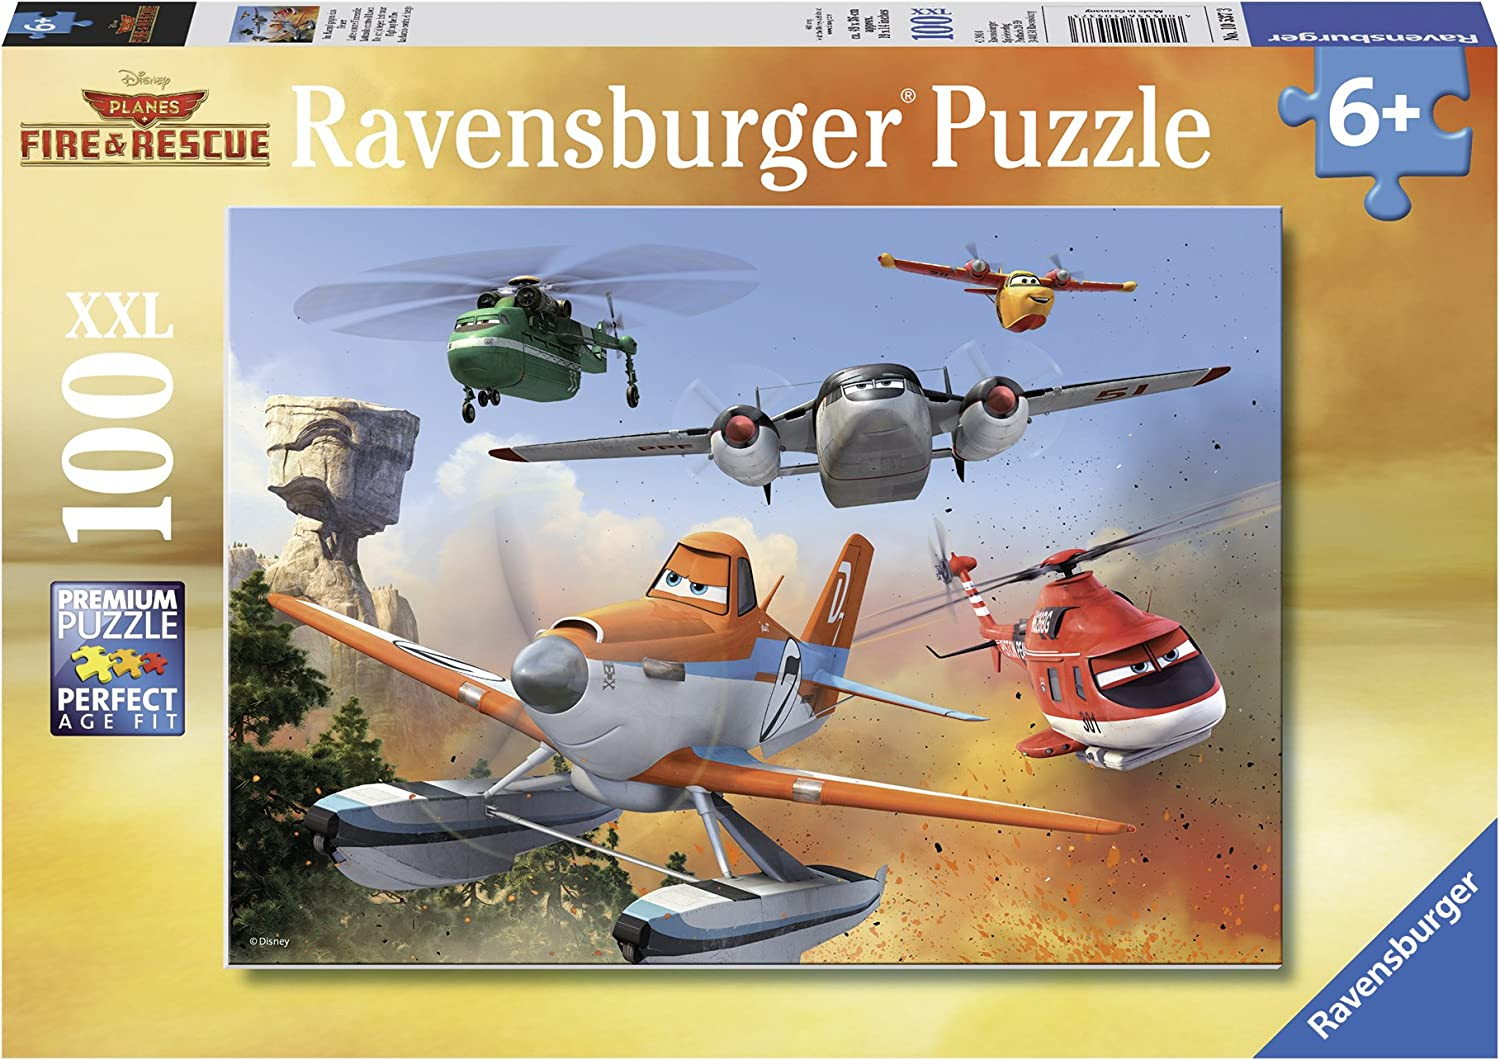 Ravensburger Disney Planes Fire Rescue Fighting The Fire 100 Piece Jigsaw Puzzle For Kids Every Piece Is Unique Pieces Fit Together Perfectly Toys Games Amazon Com